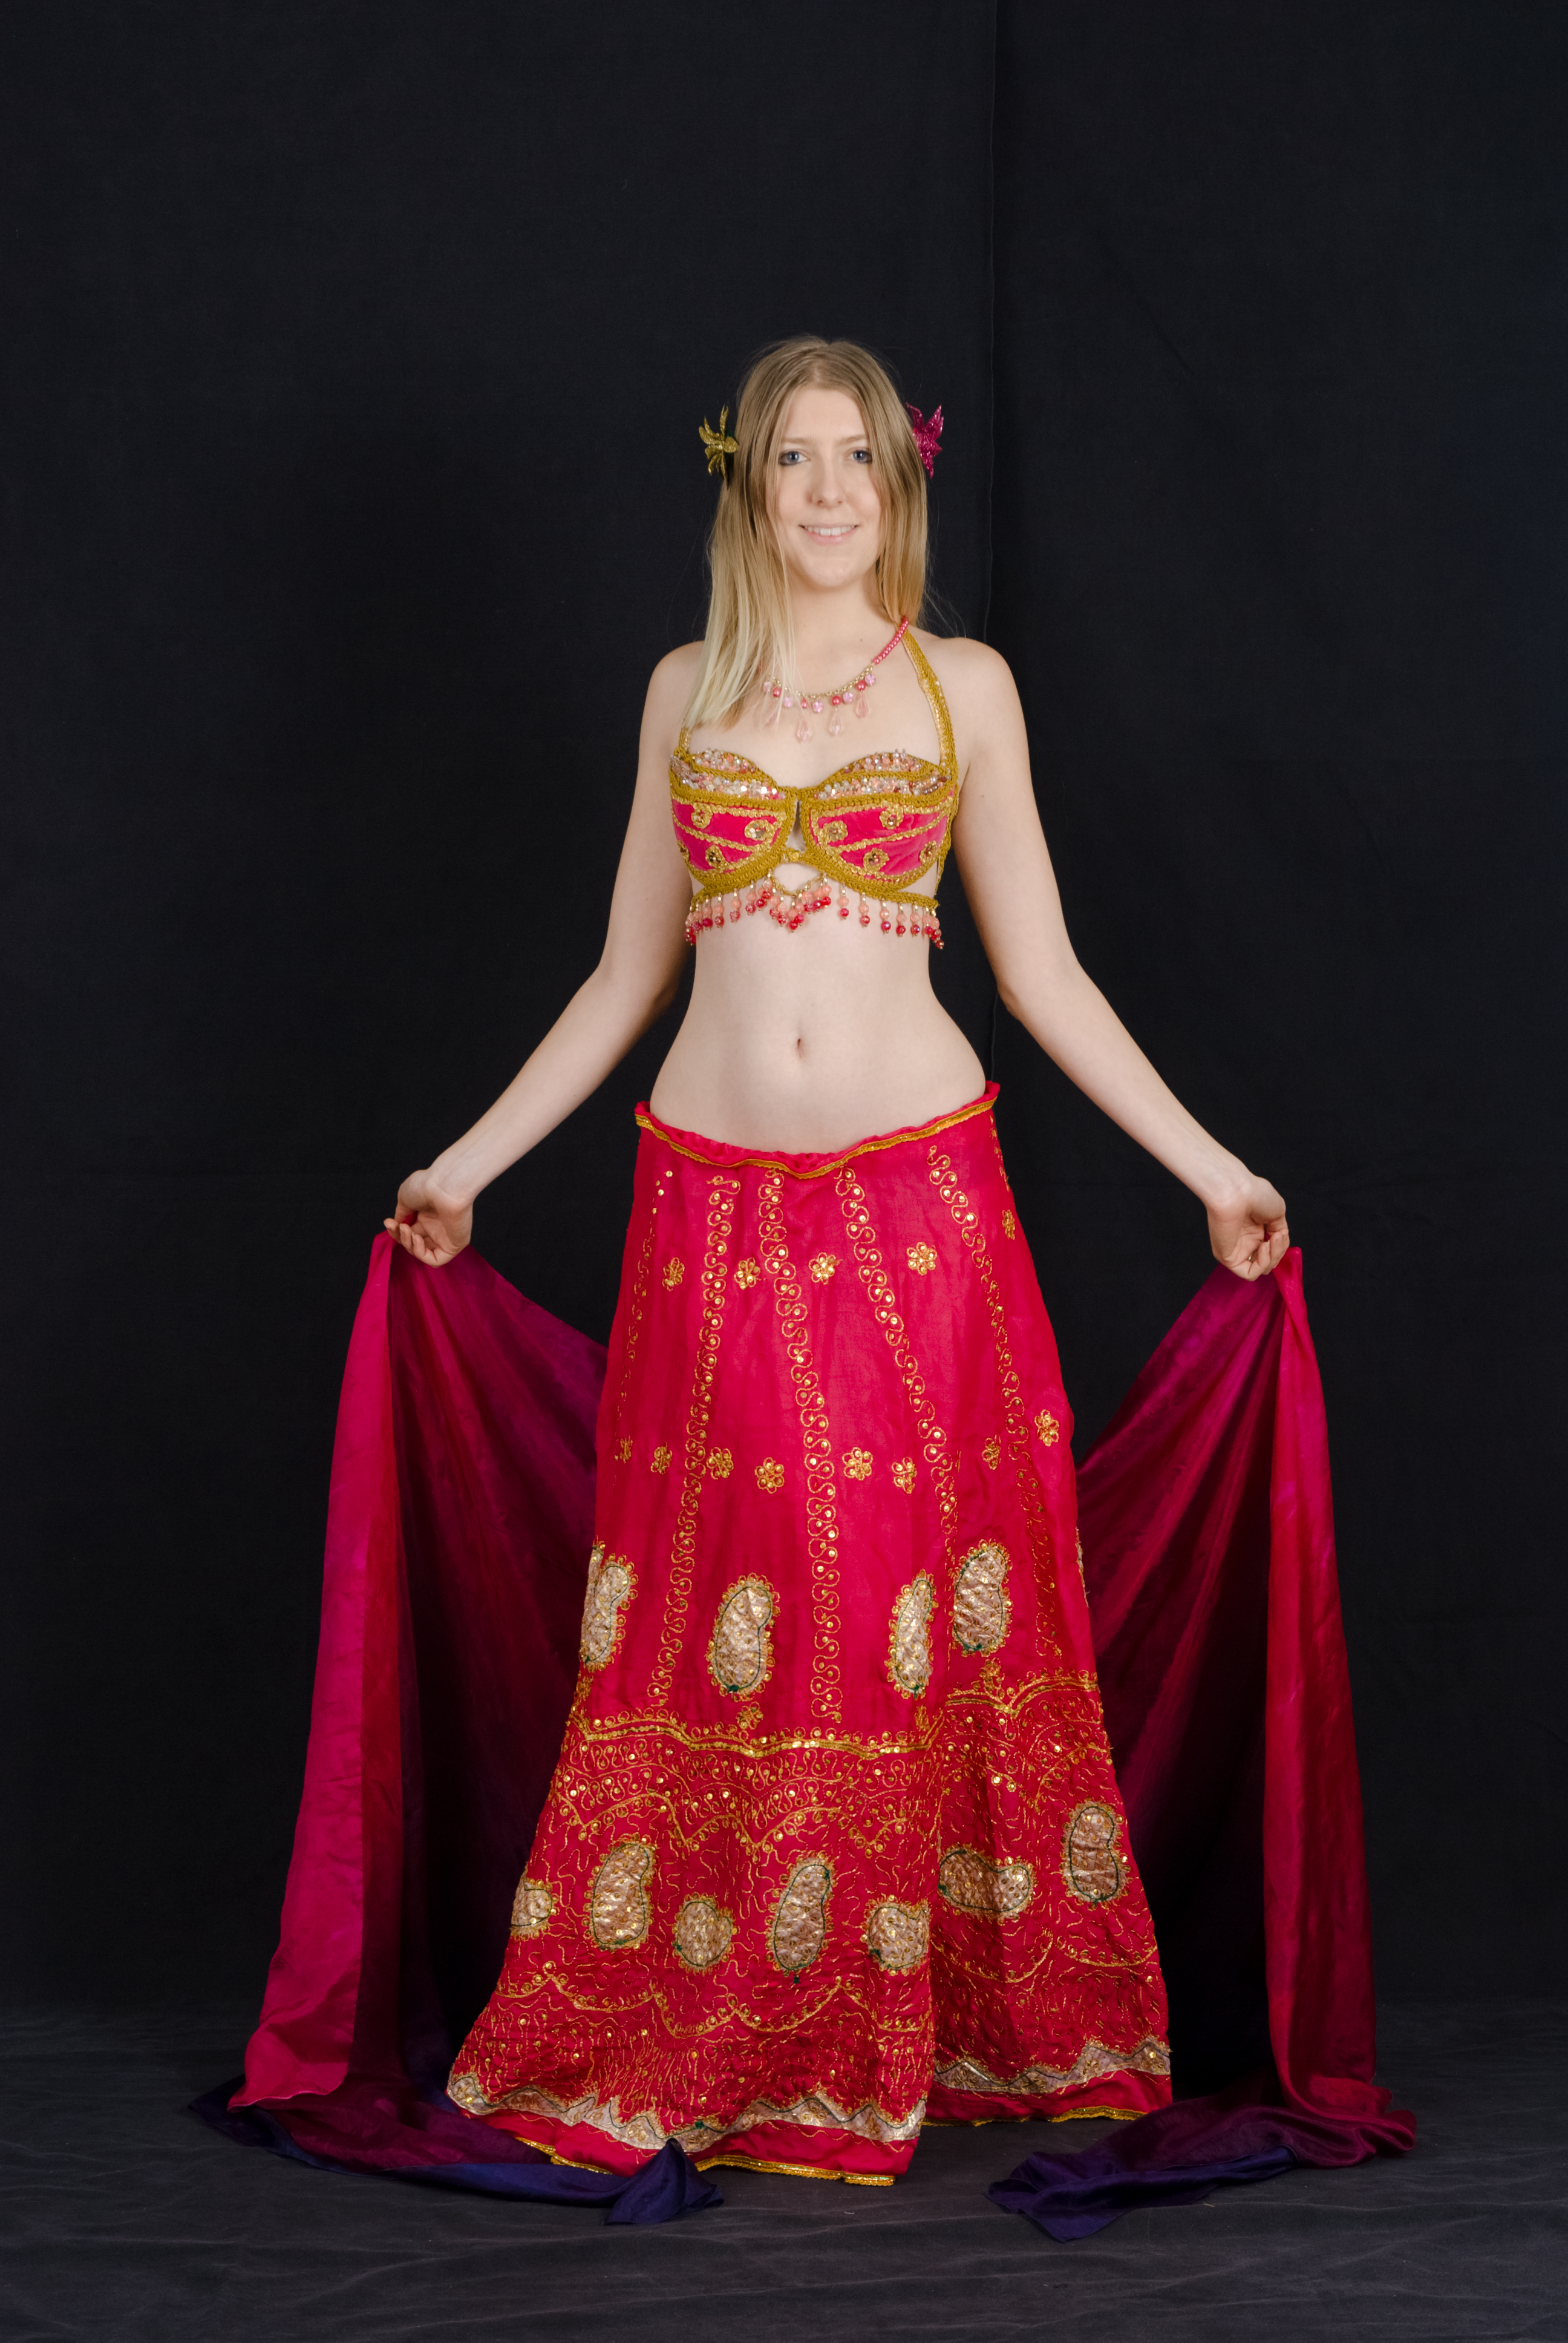 Belly Dance Stance by Danika-Stock